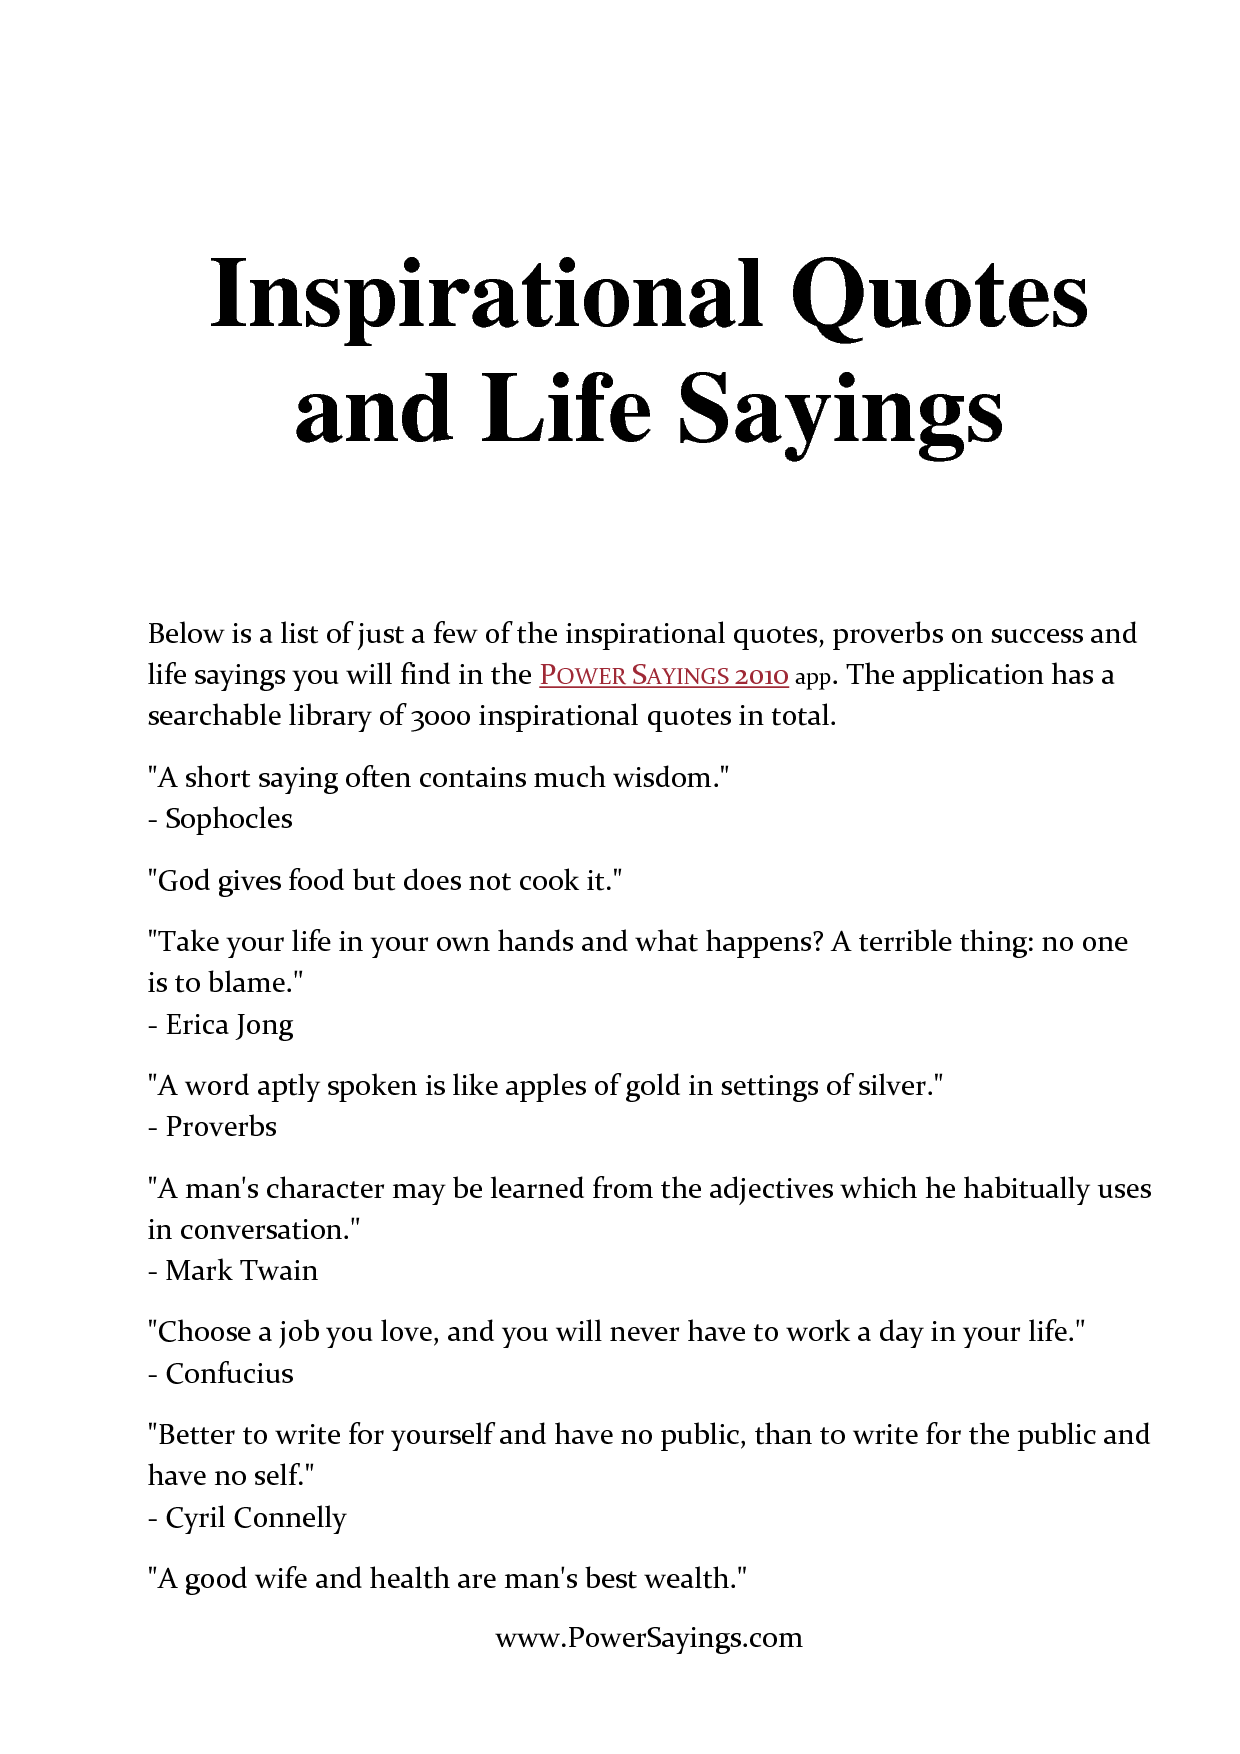 Short Inspirational Quotes About Life Inspirational Quotes About Life  Inspirational Quotes And Life